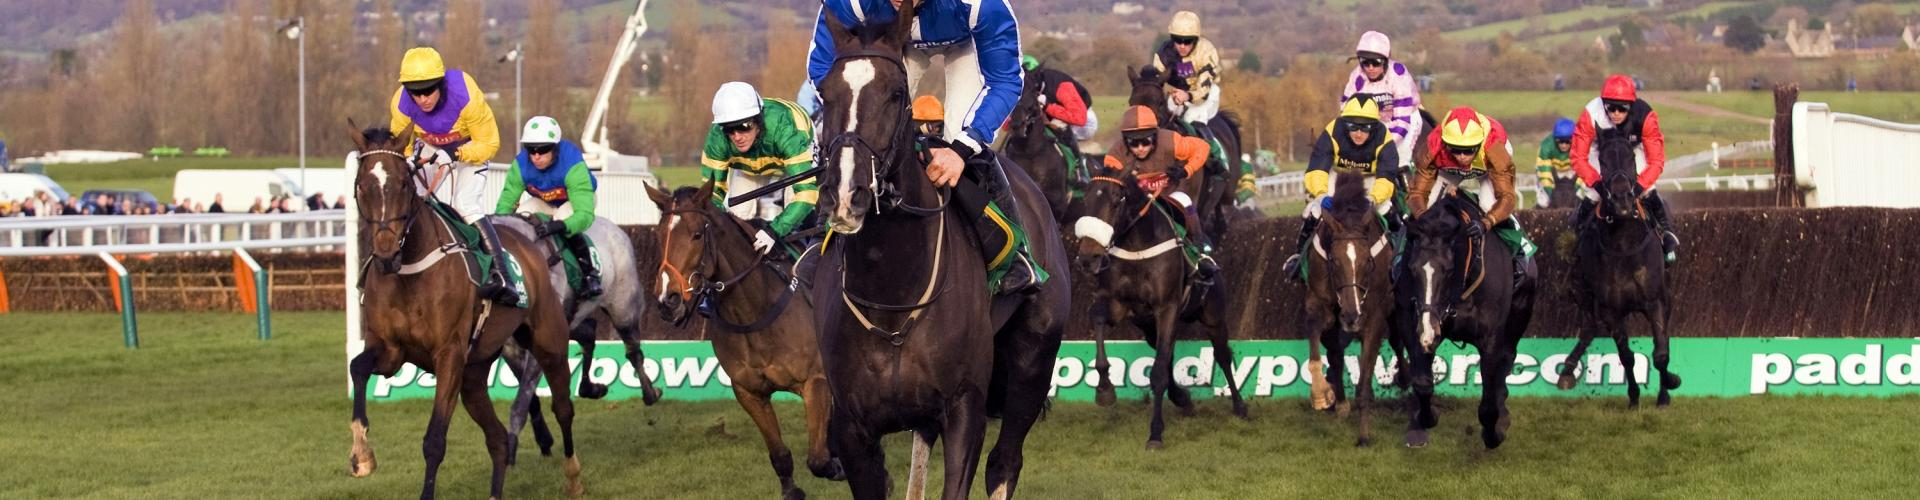 Cheltenham Sam Twiston Davies leads the field over fences in the fourth race at Cheltenham Racecourse in Cheltenham Gloucestershire 2